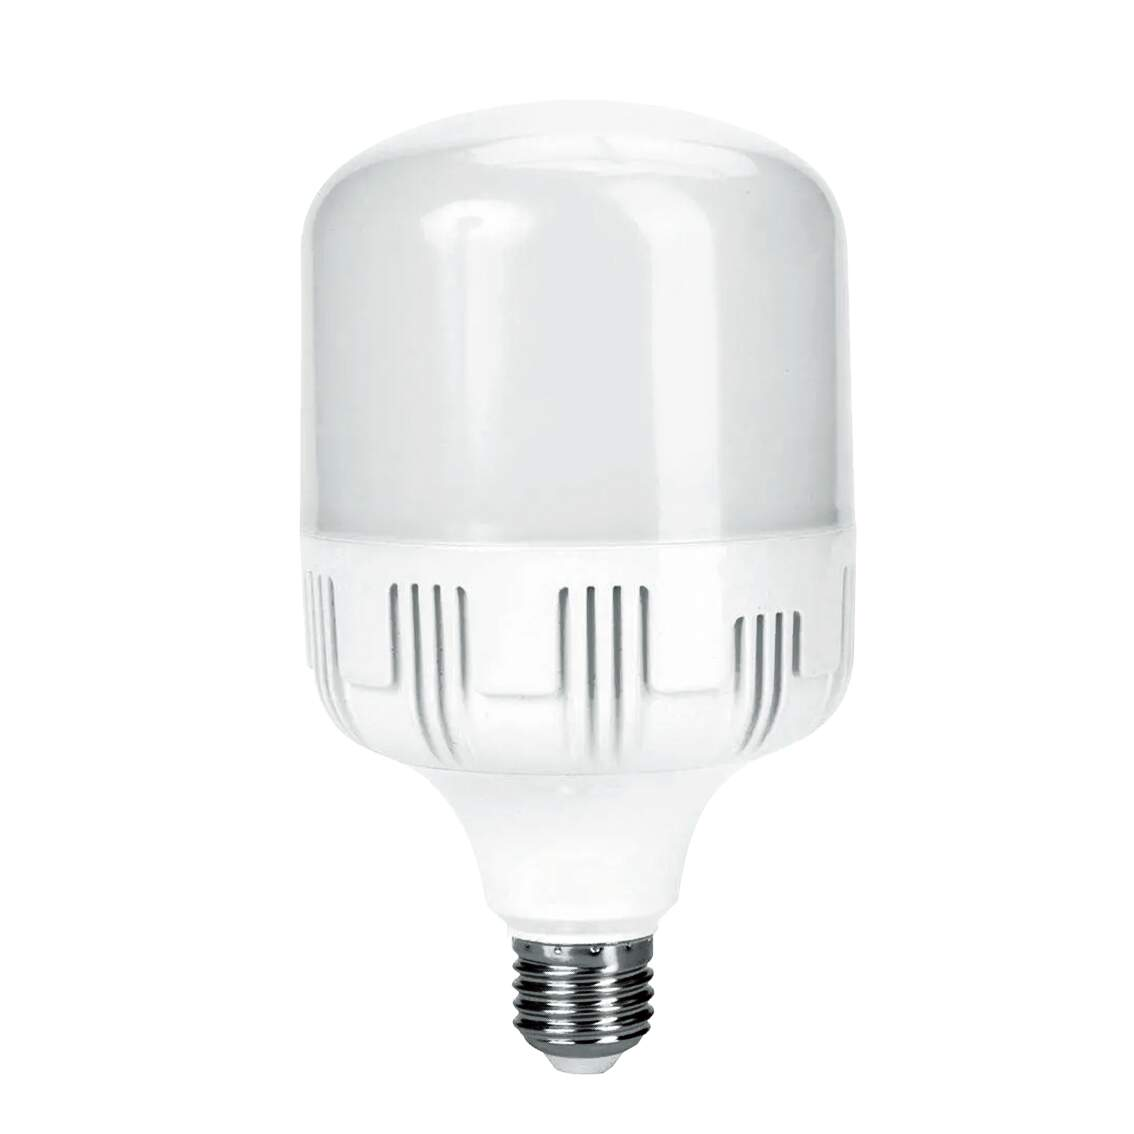 Lâmpada LED industrial bulbo E27 70w